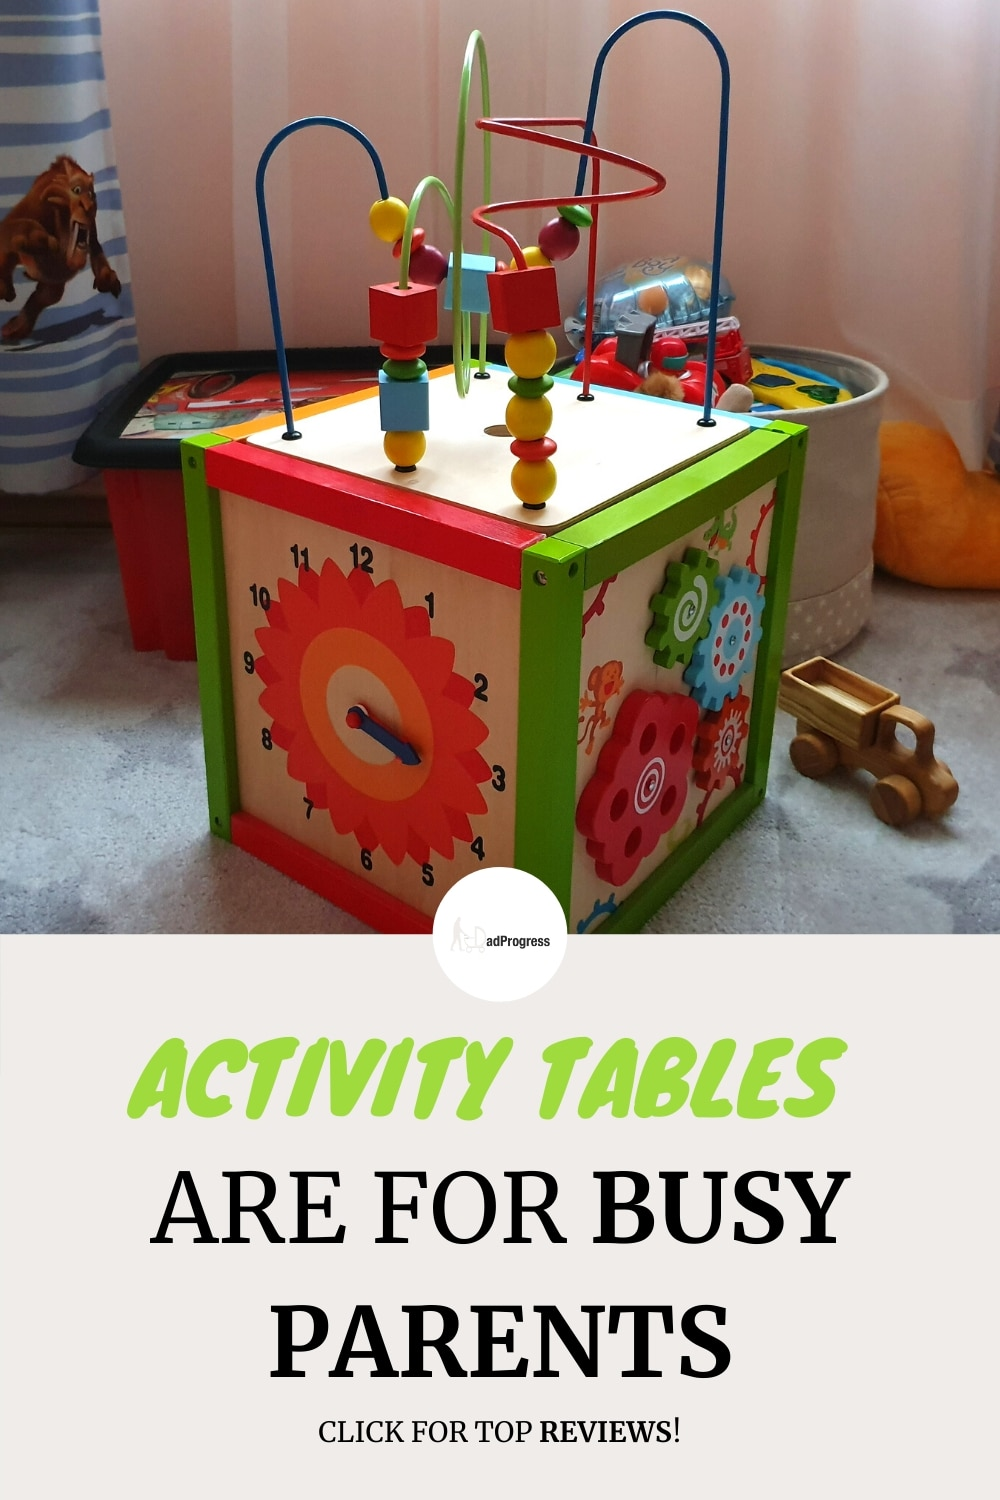 Activity table (for a baby, toddlers, or older kids) is a great learning toy, and it will free up some of your time as kids are so engaged by it. I wrote a post about the best options out there. Click on the link if you wish to learn more!